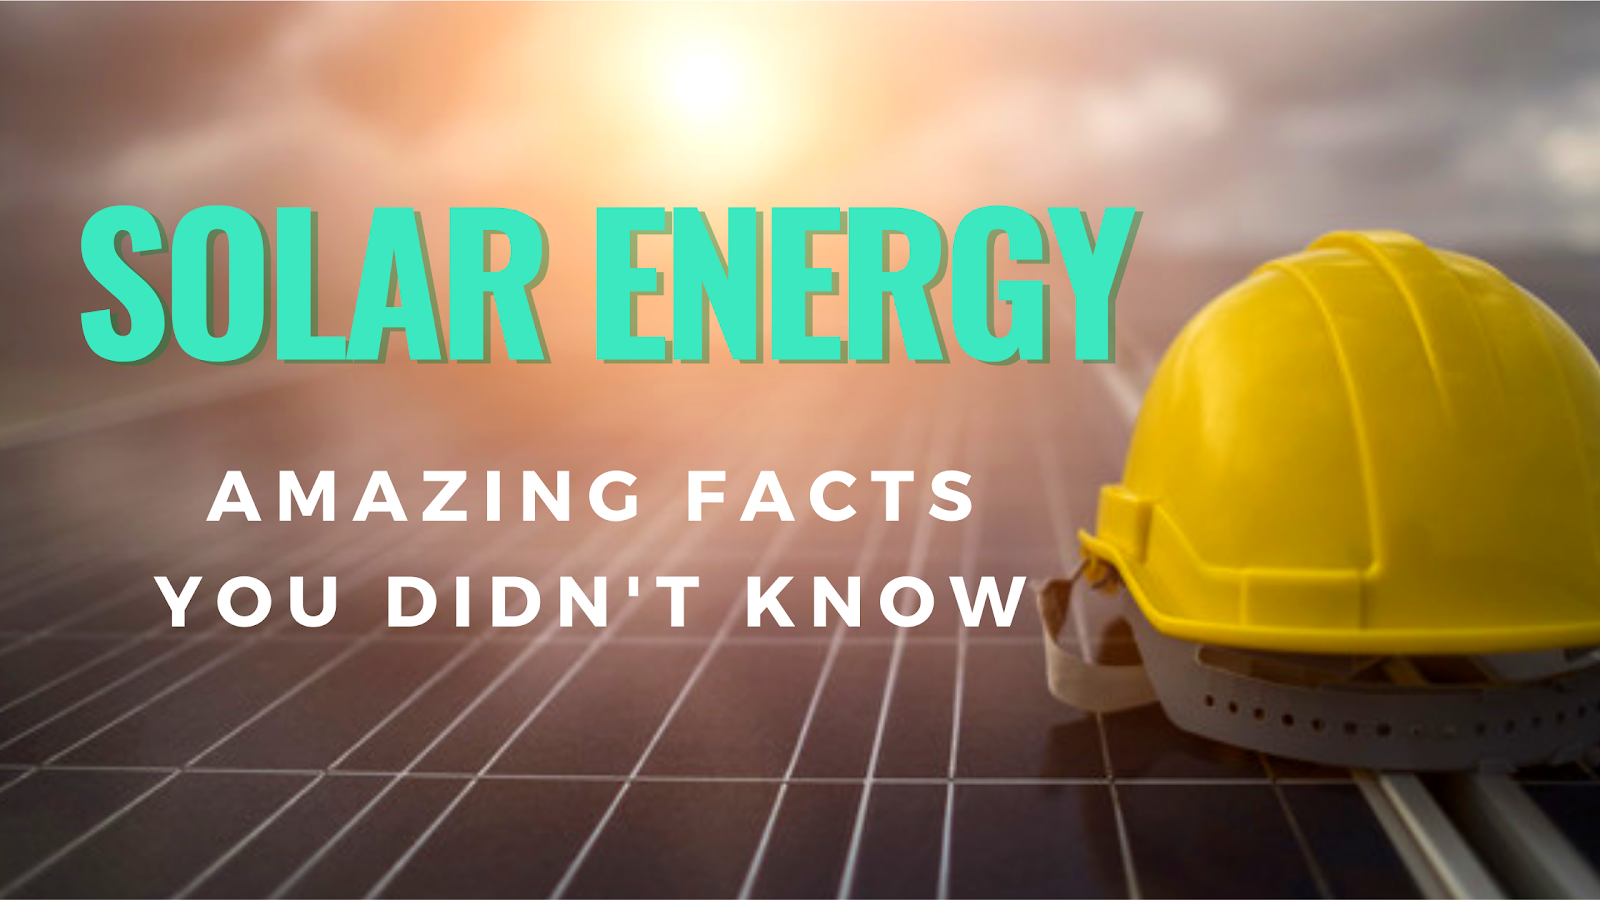 Solar Energy Facts - Reurasia